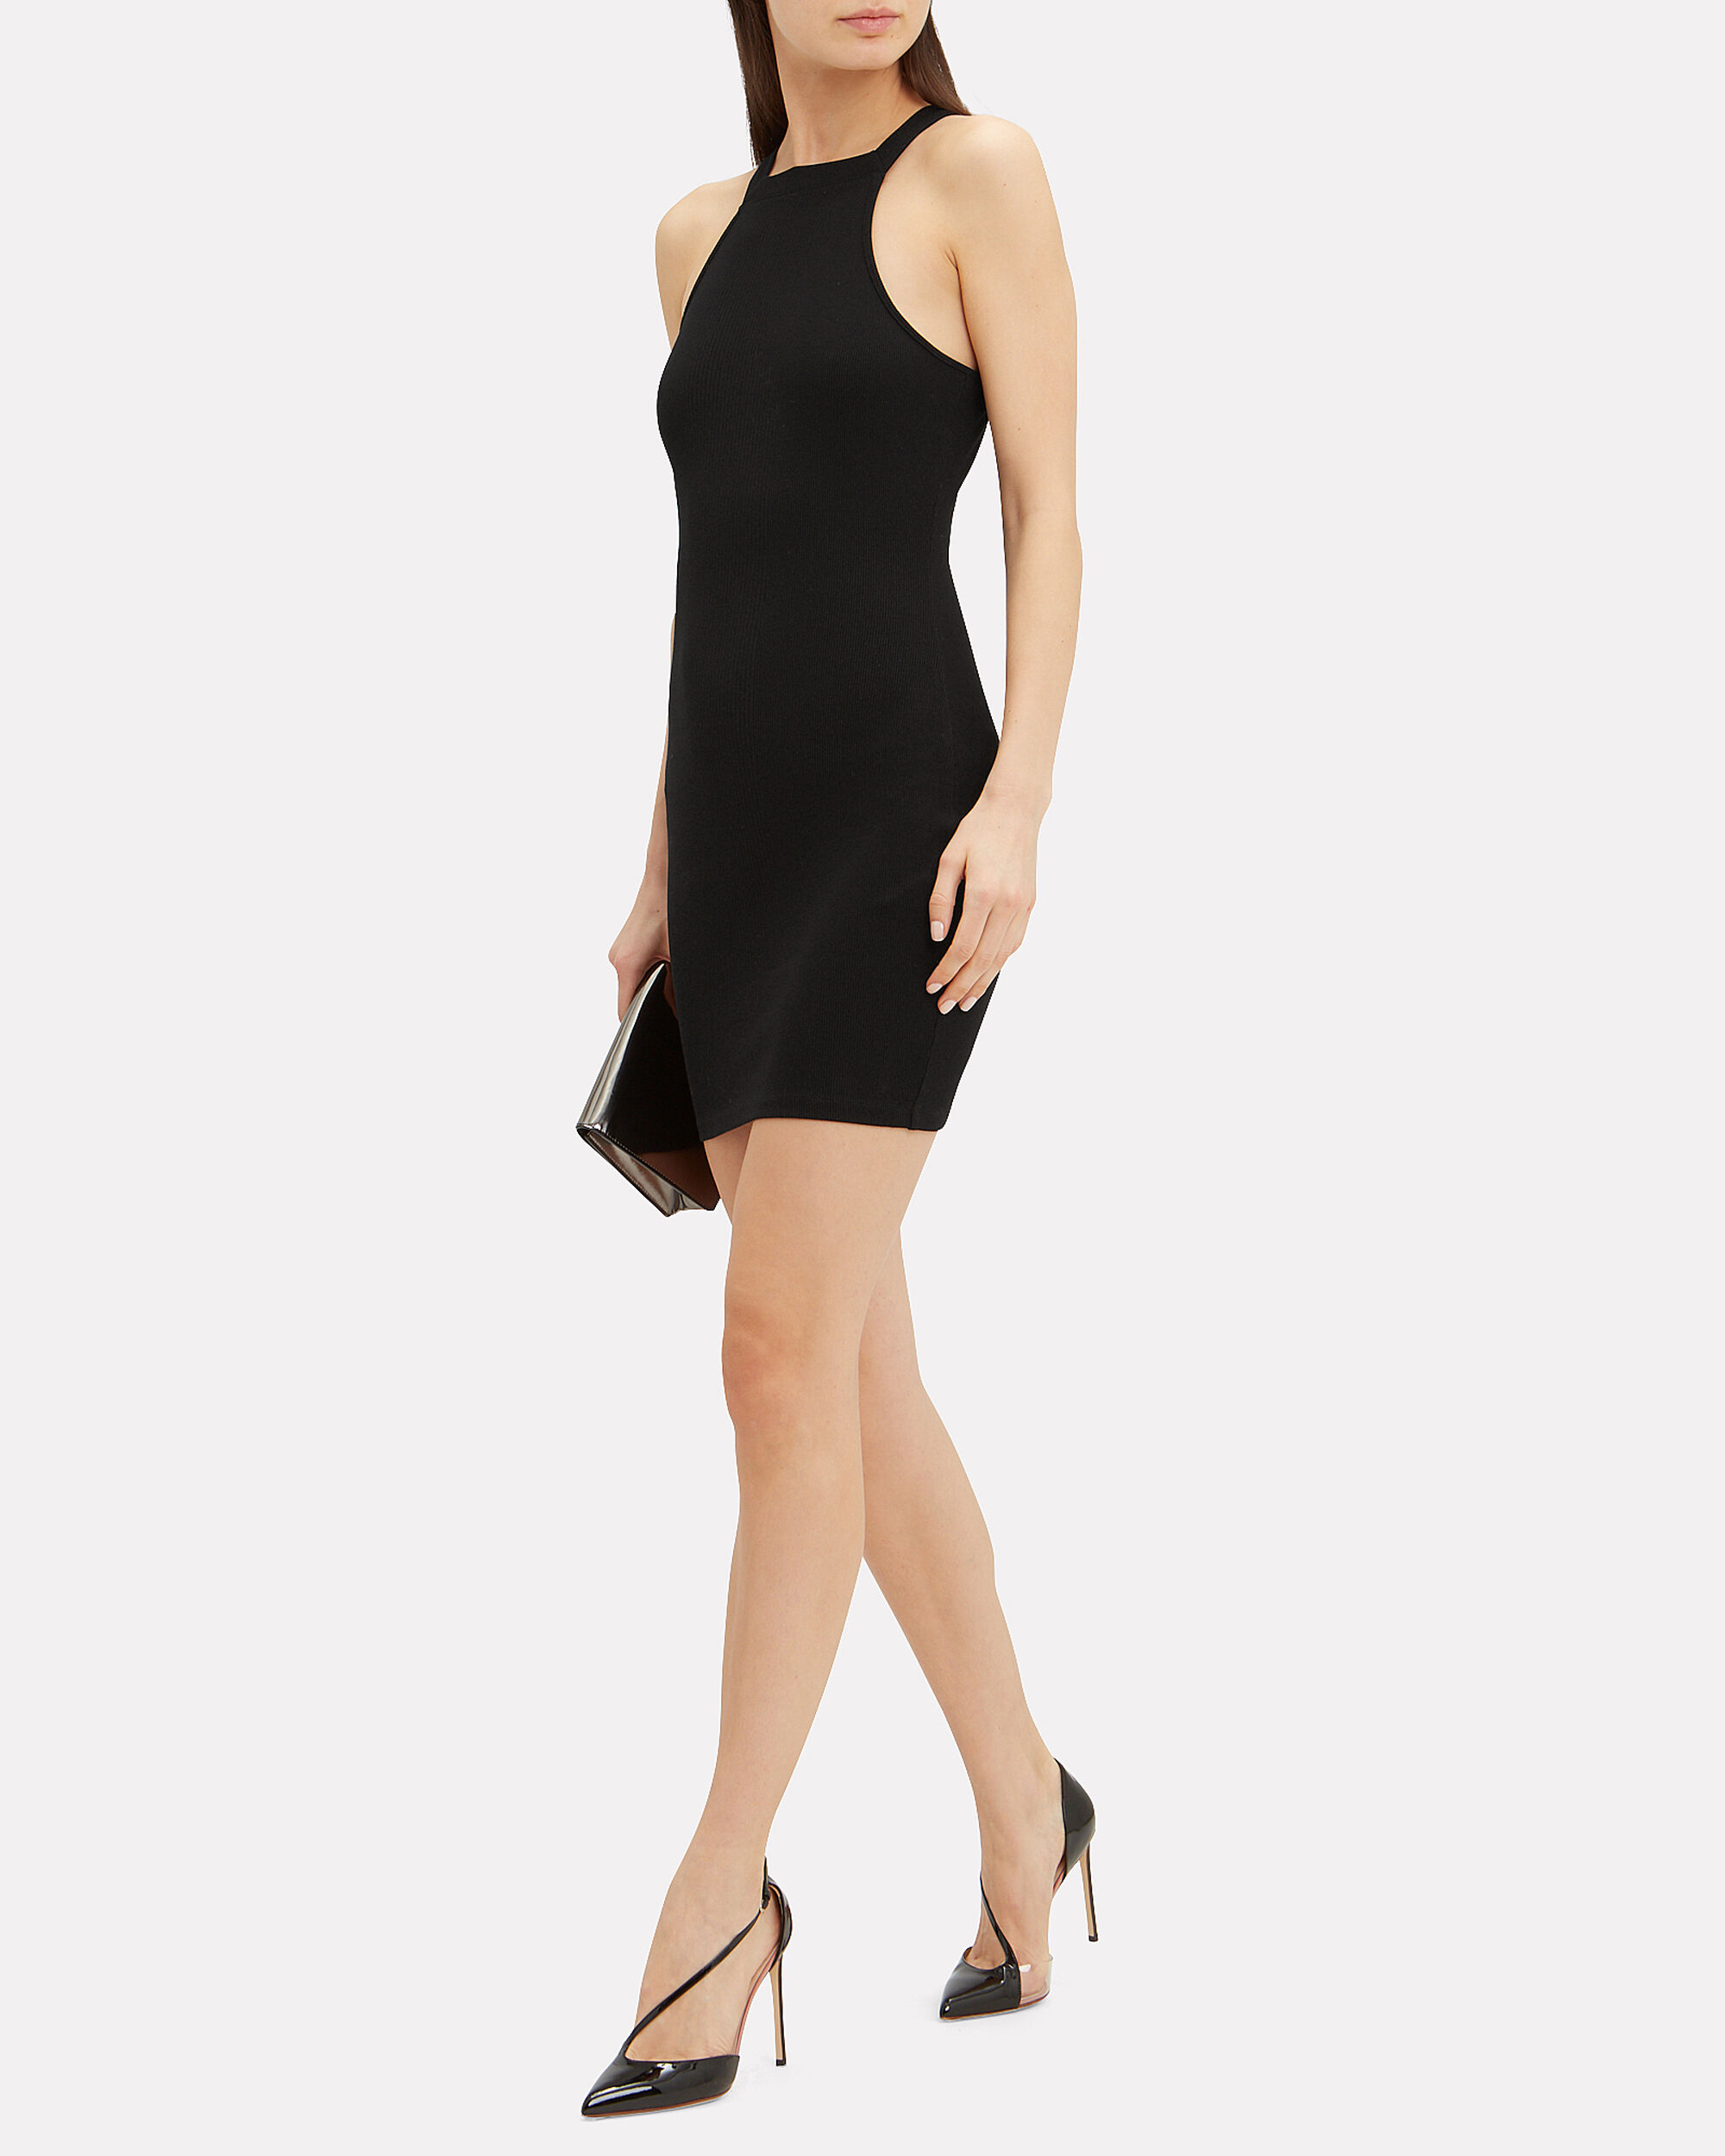 Variegated Compact Jersey Dress, BLACK, hi-res